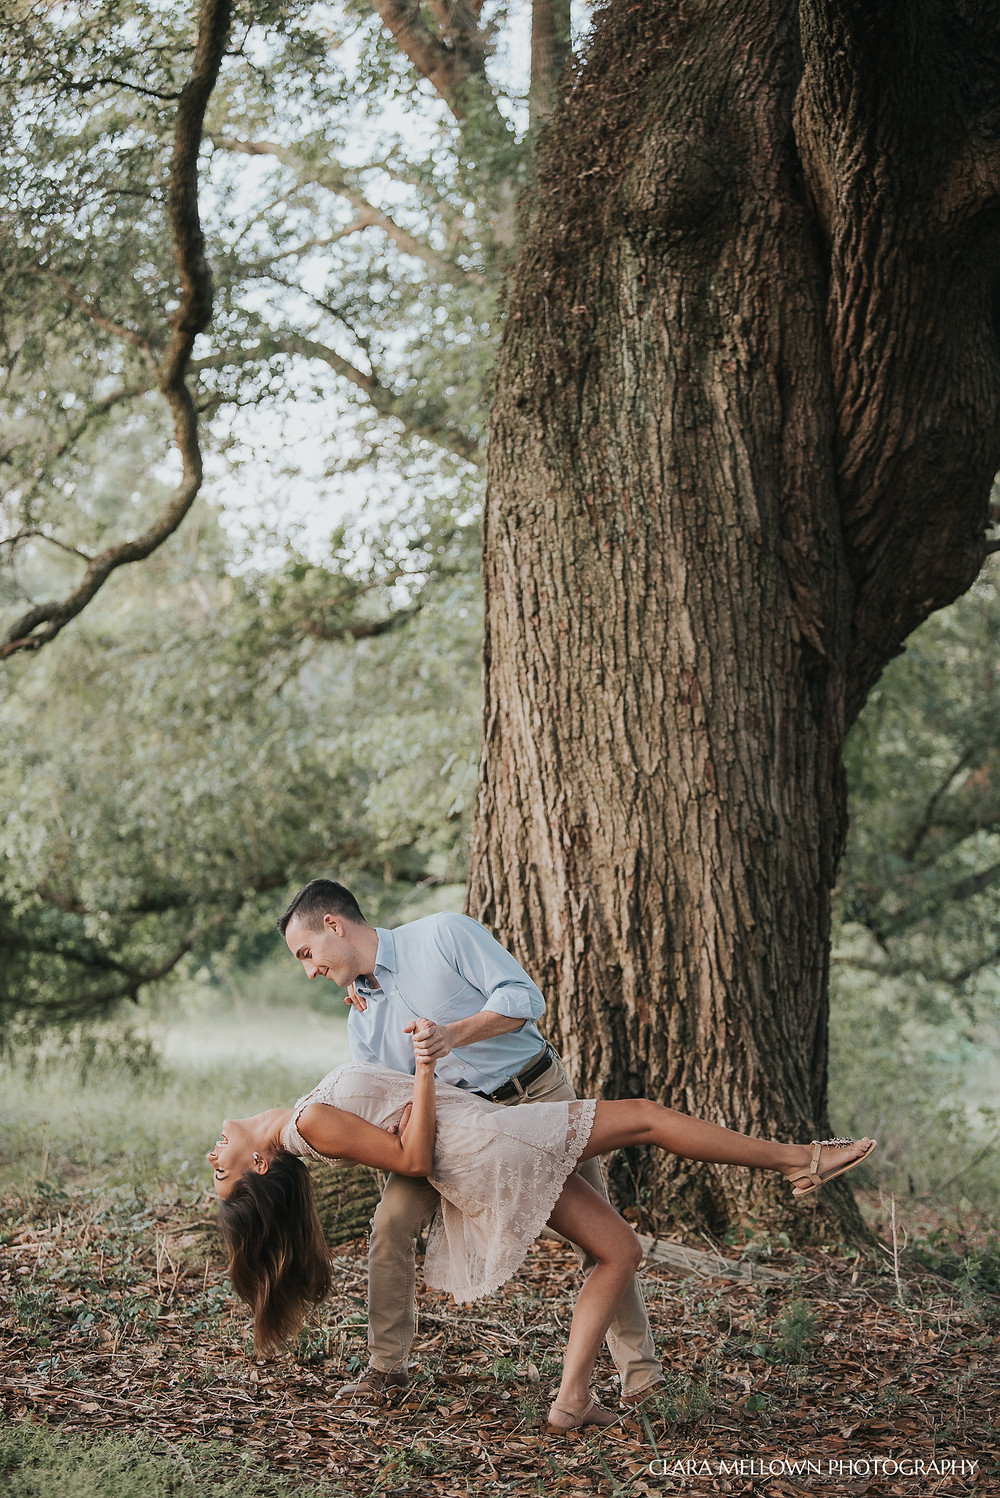 Engagement Photographer in Prattville, Alabama